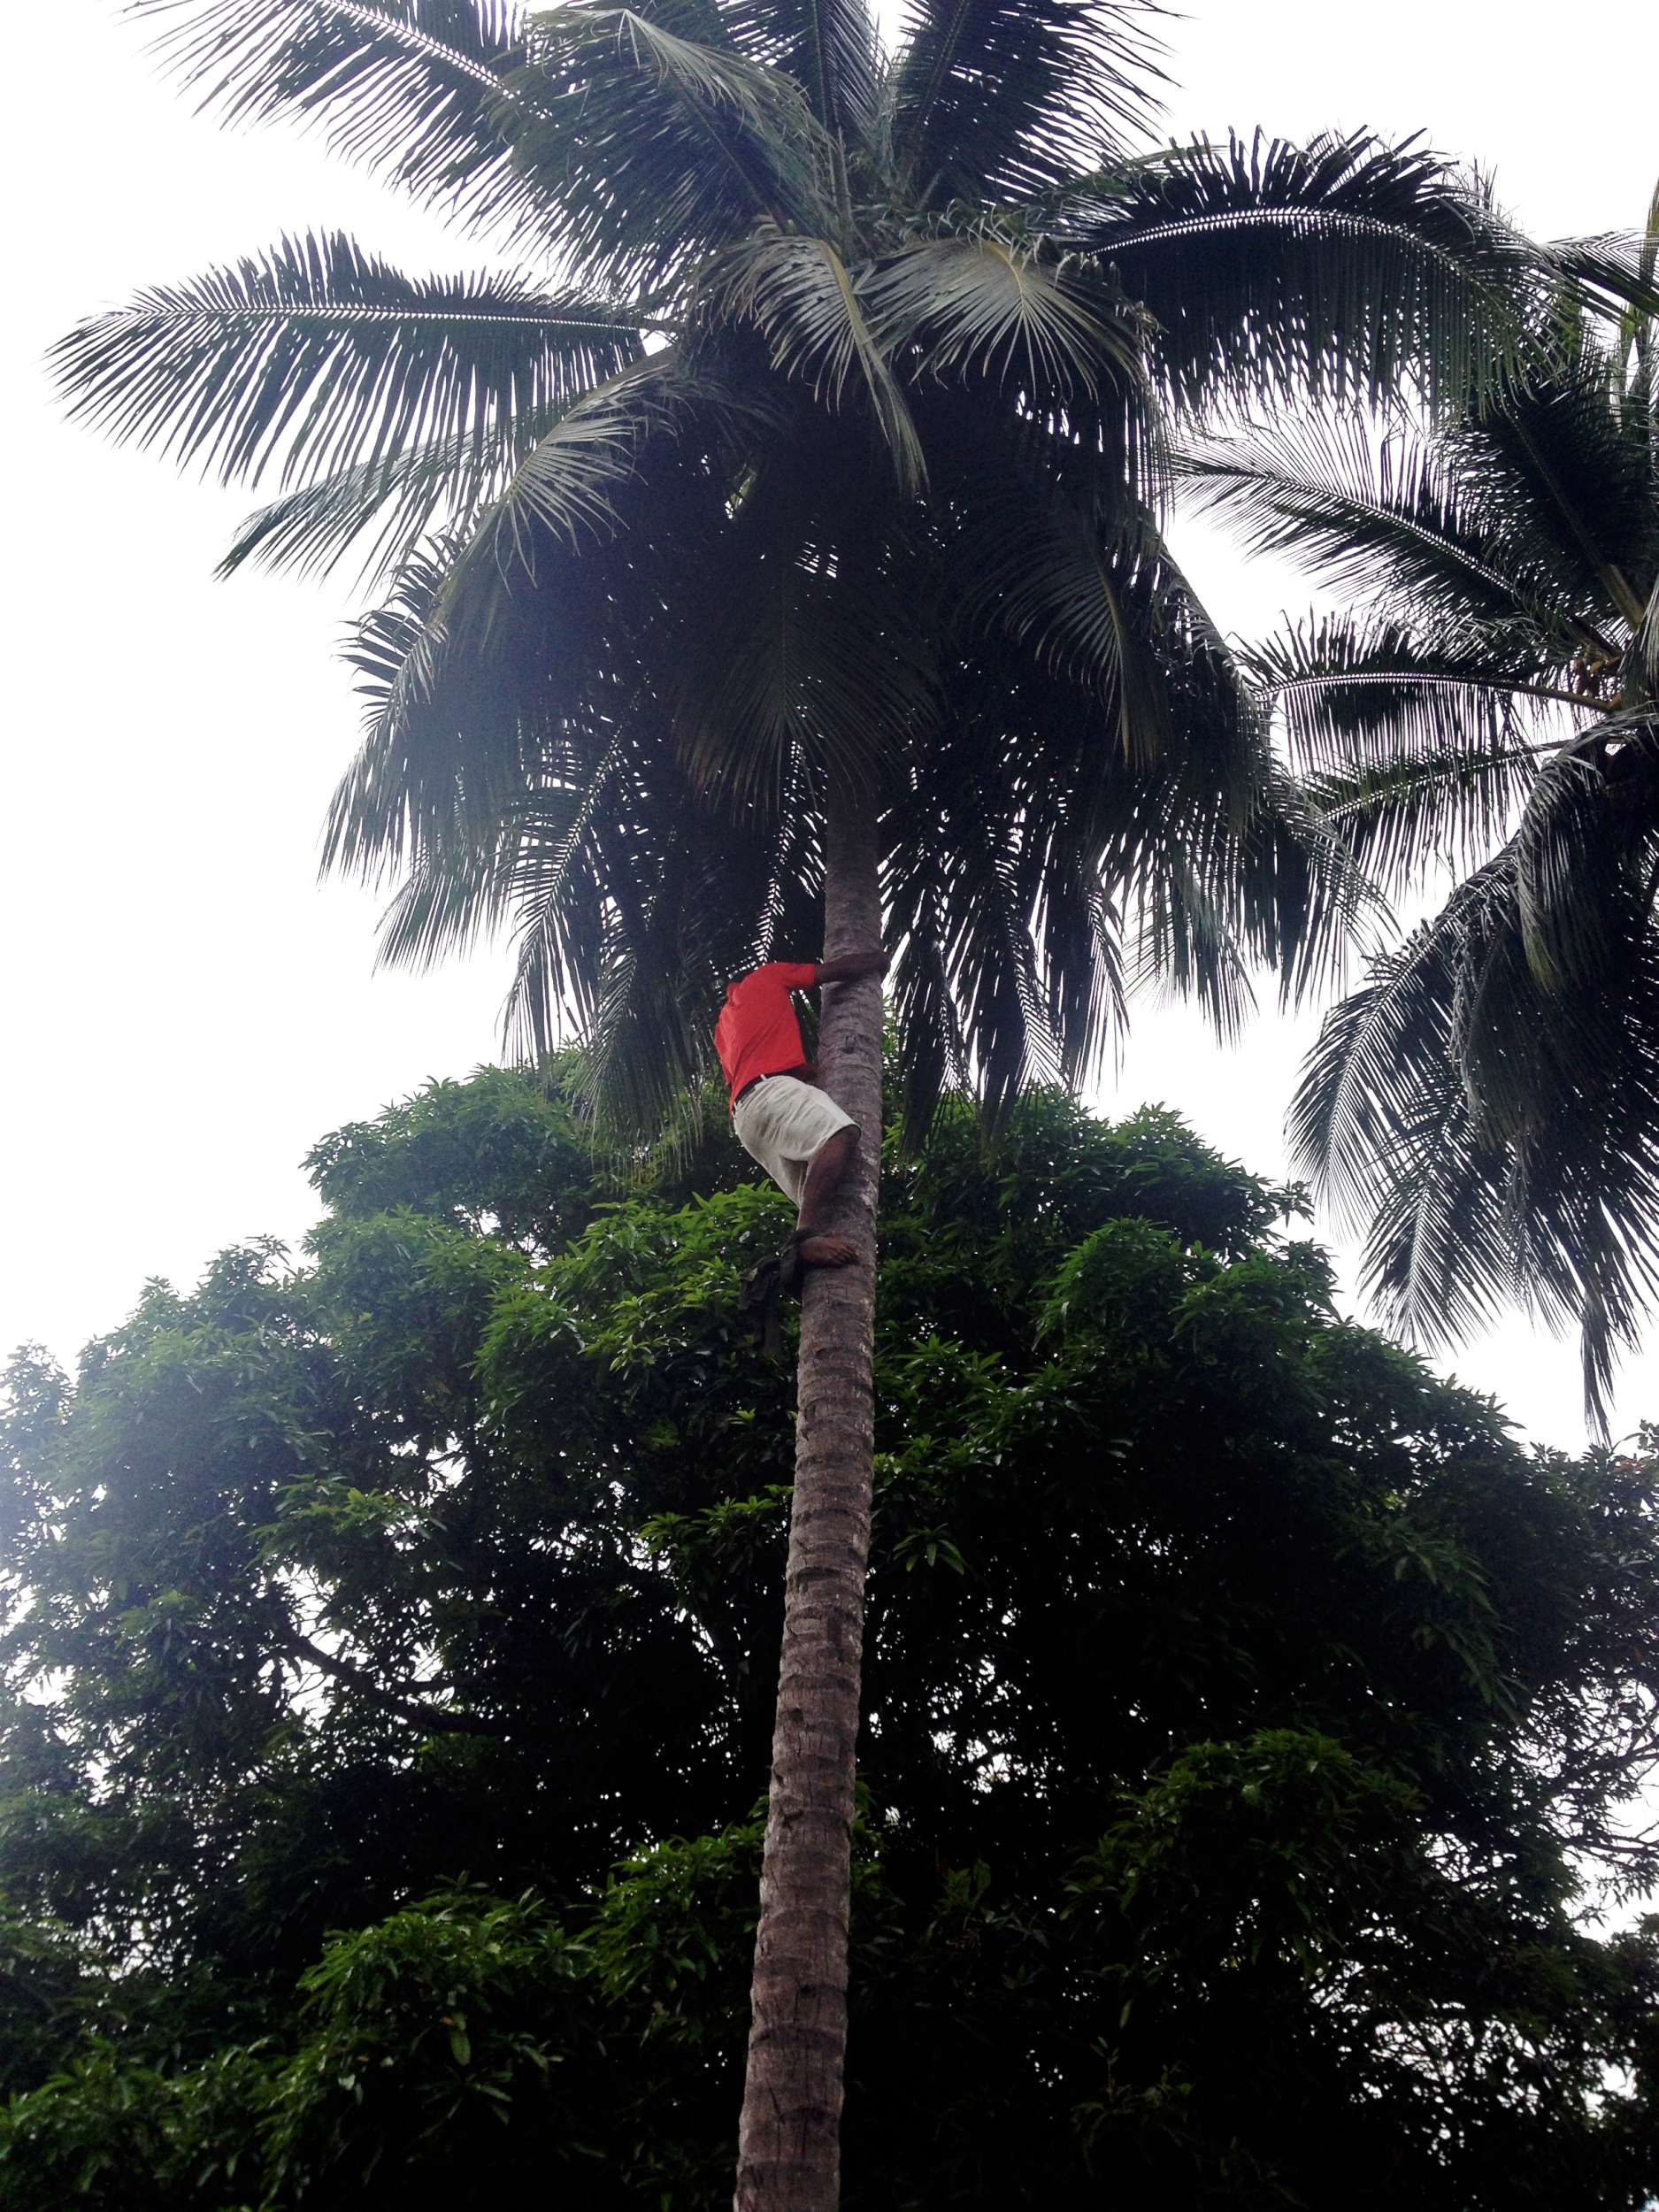 One of the many times that Michael scaled a coconut tree like it was nothing.